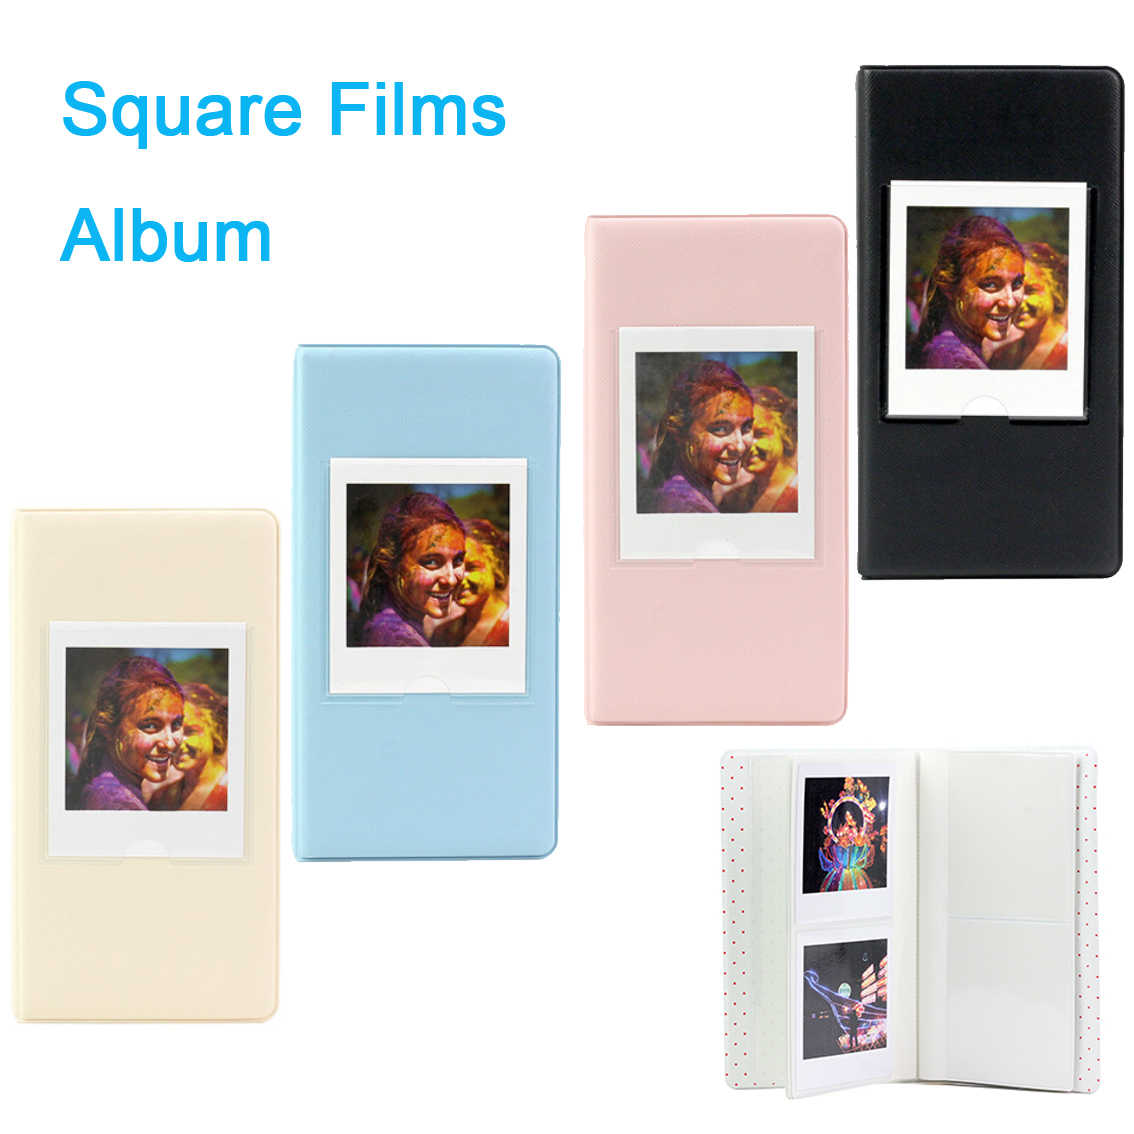 64 Pockets Fuji Fujifilm Instax SQ20 Square Films Photo Album SQ 20 10 6 Instant Camera SP-3 Printer Photo Paper Book Album